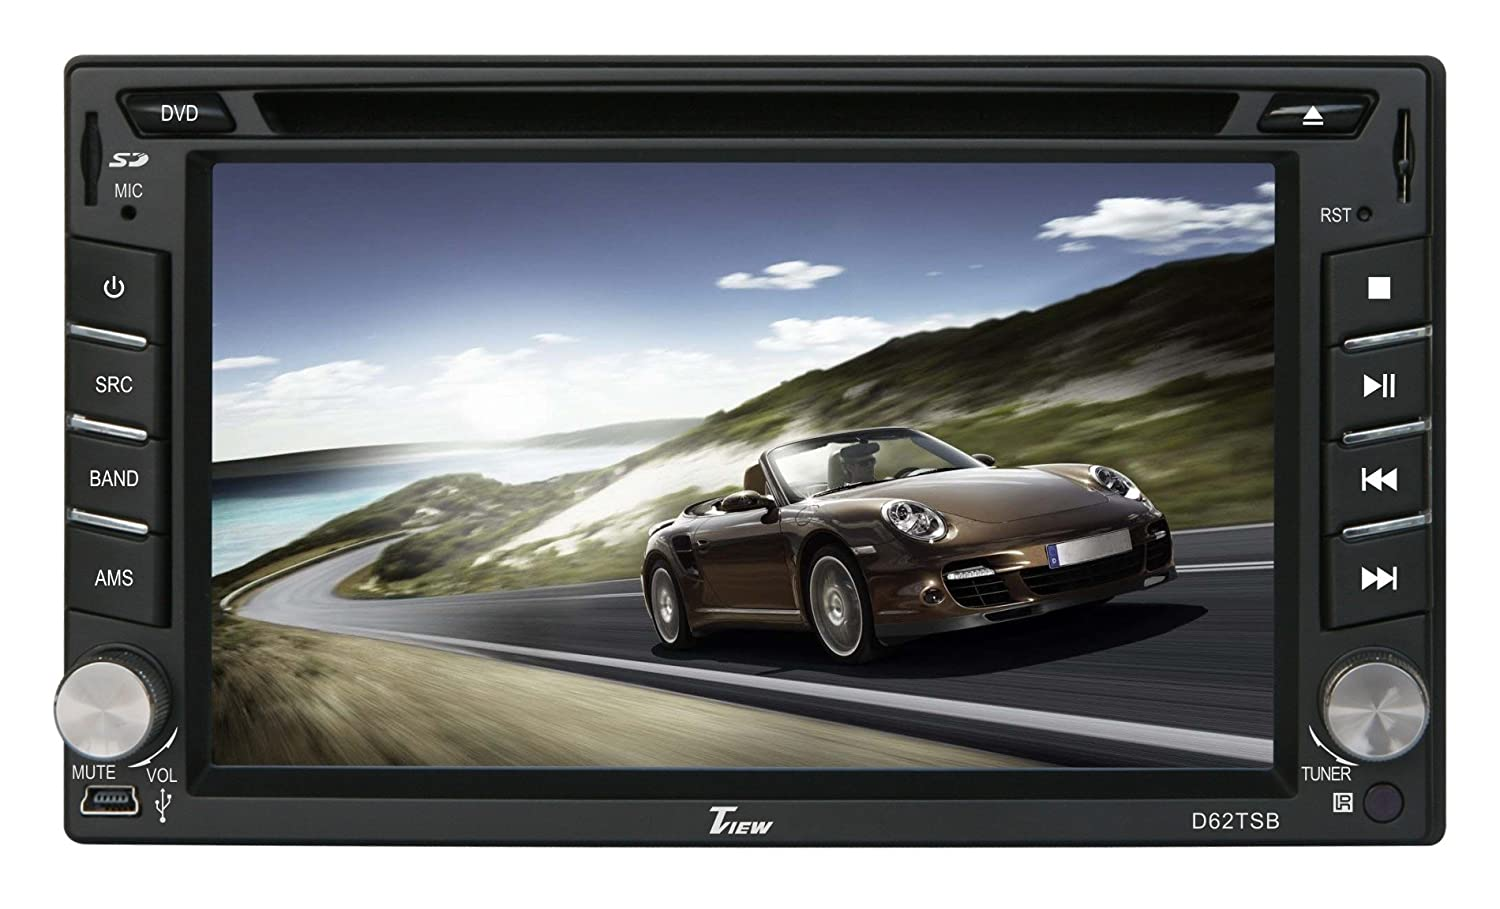 71N8 eVkMJL._SL1500_ amazon com tview d62tsb 6 2 inch double din touch screen with  at eliteediting.co